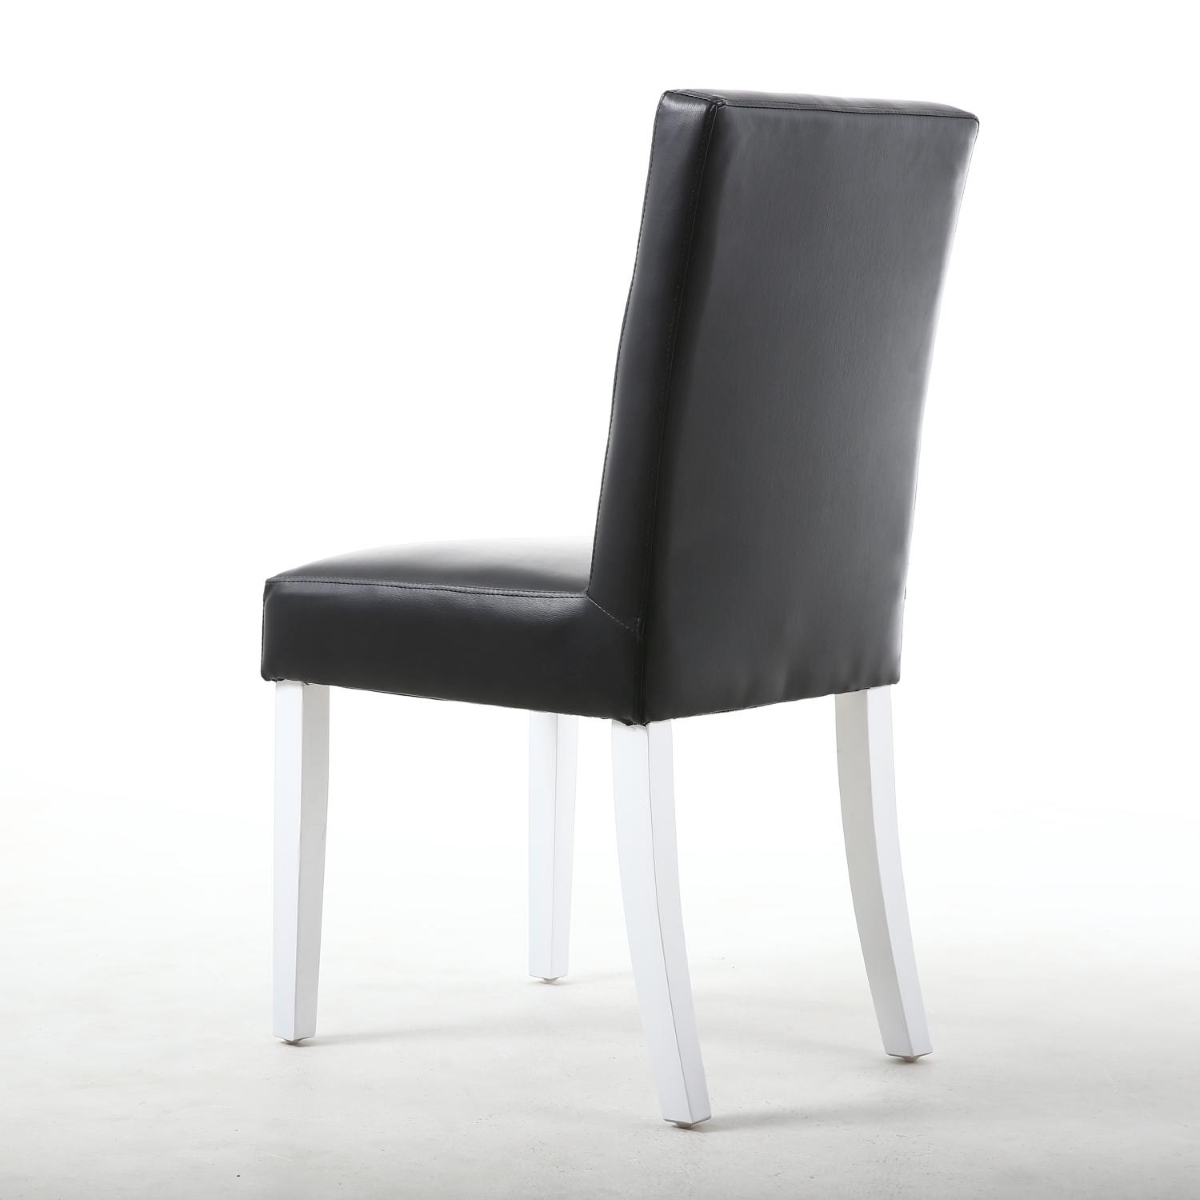 Dining Chairs Shankar Espresso Style 010 Black Bonded  : shankarespressodiningchair010 07 03 04 011 1200x1200 from www.121homefurniture.co.uk size 1200 x 1200 jpeg 206kB